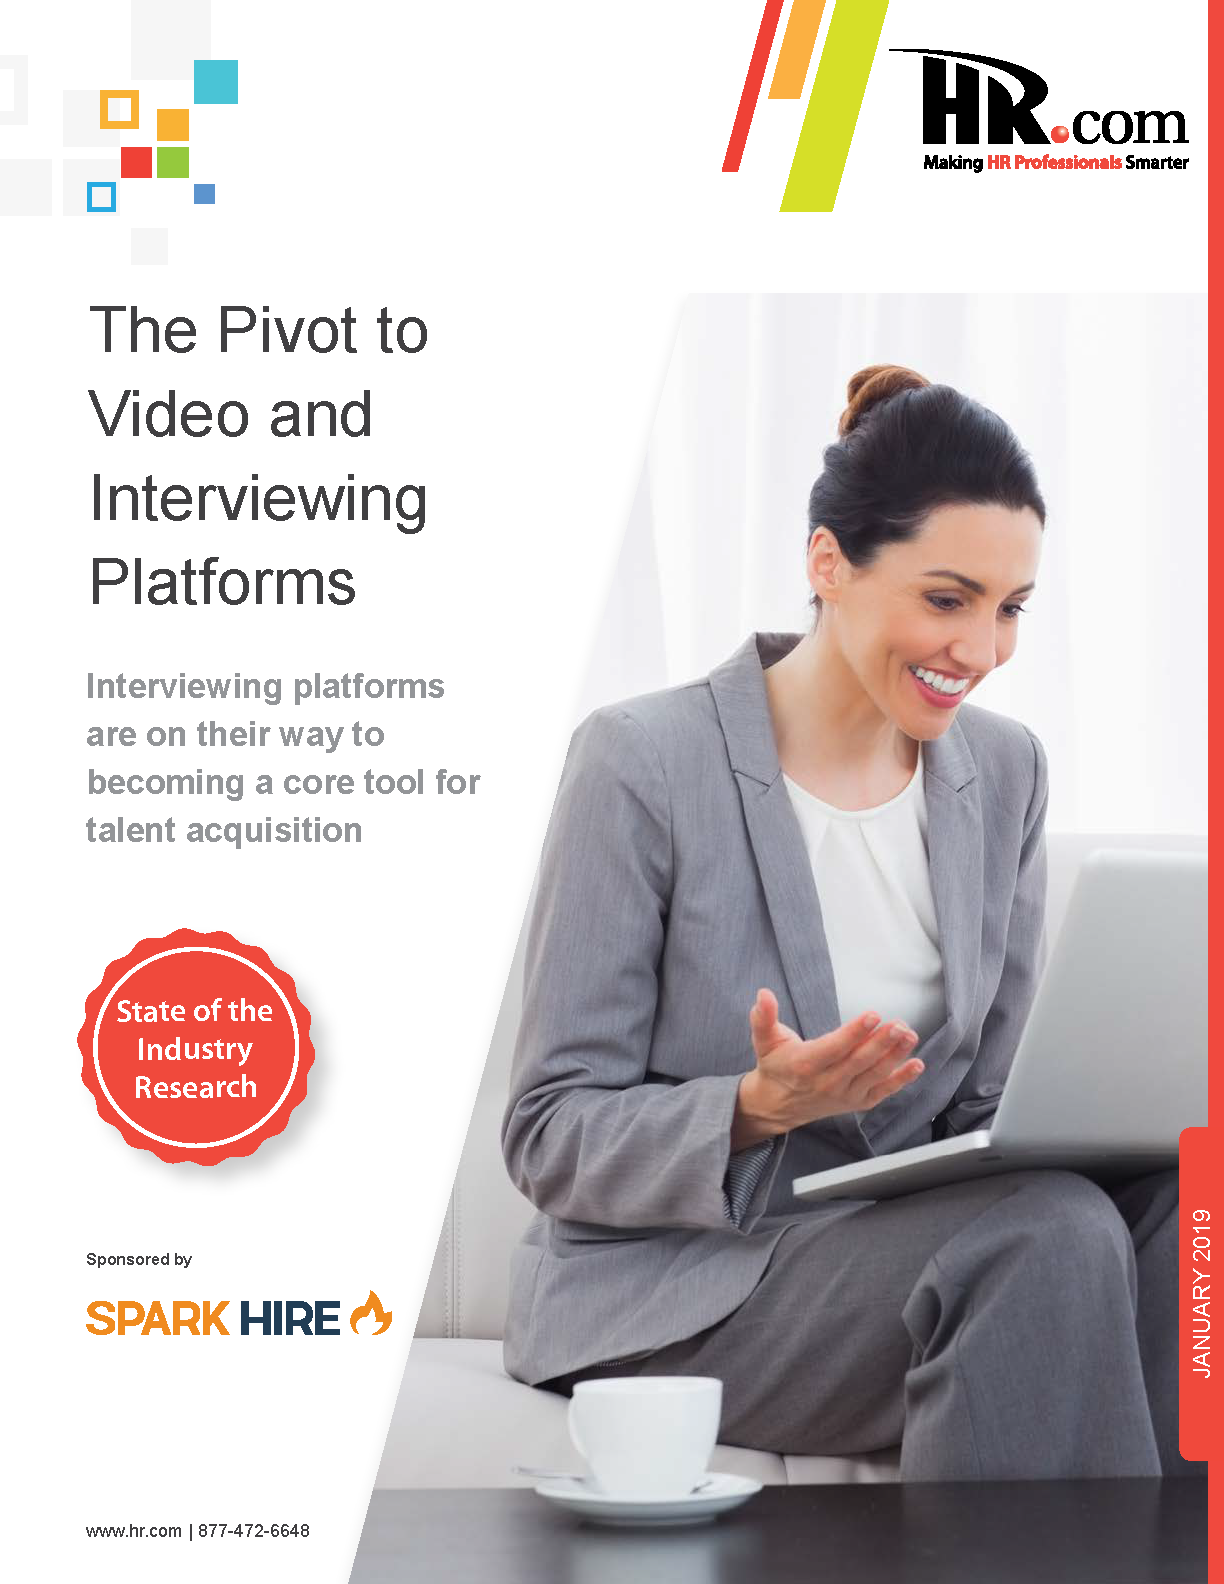 The Pivot to Video and Interviewing Platforms